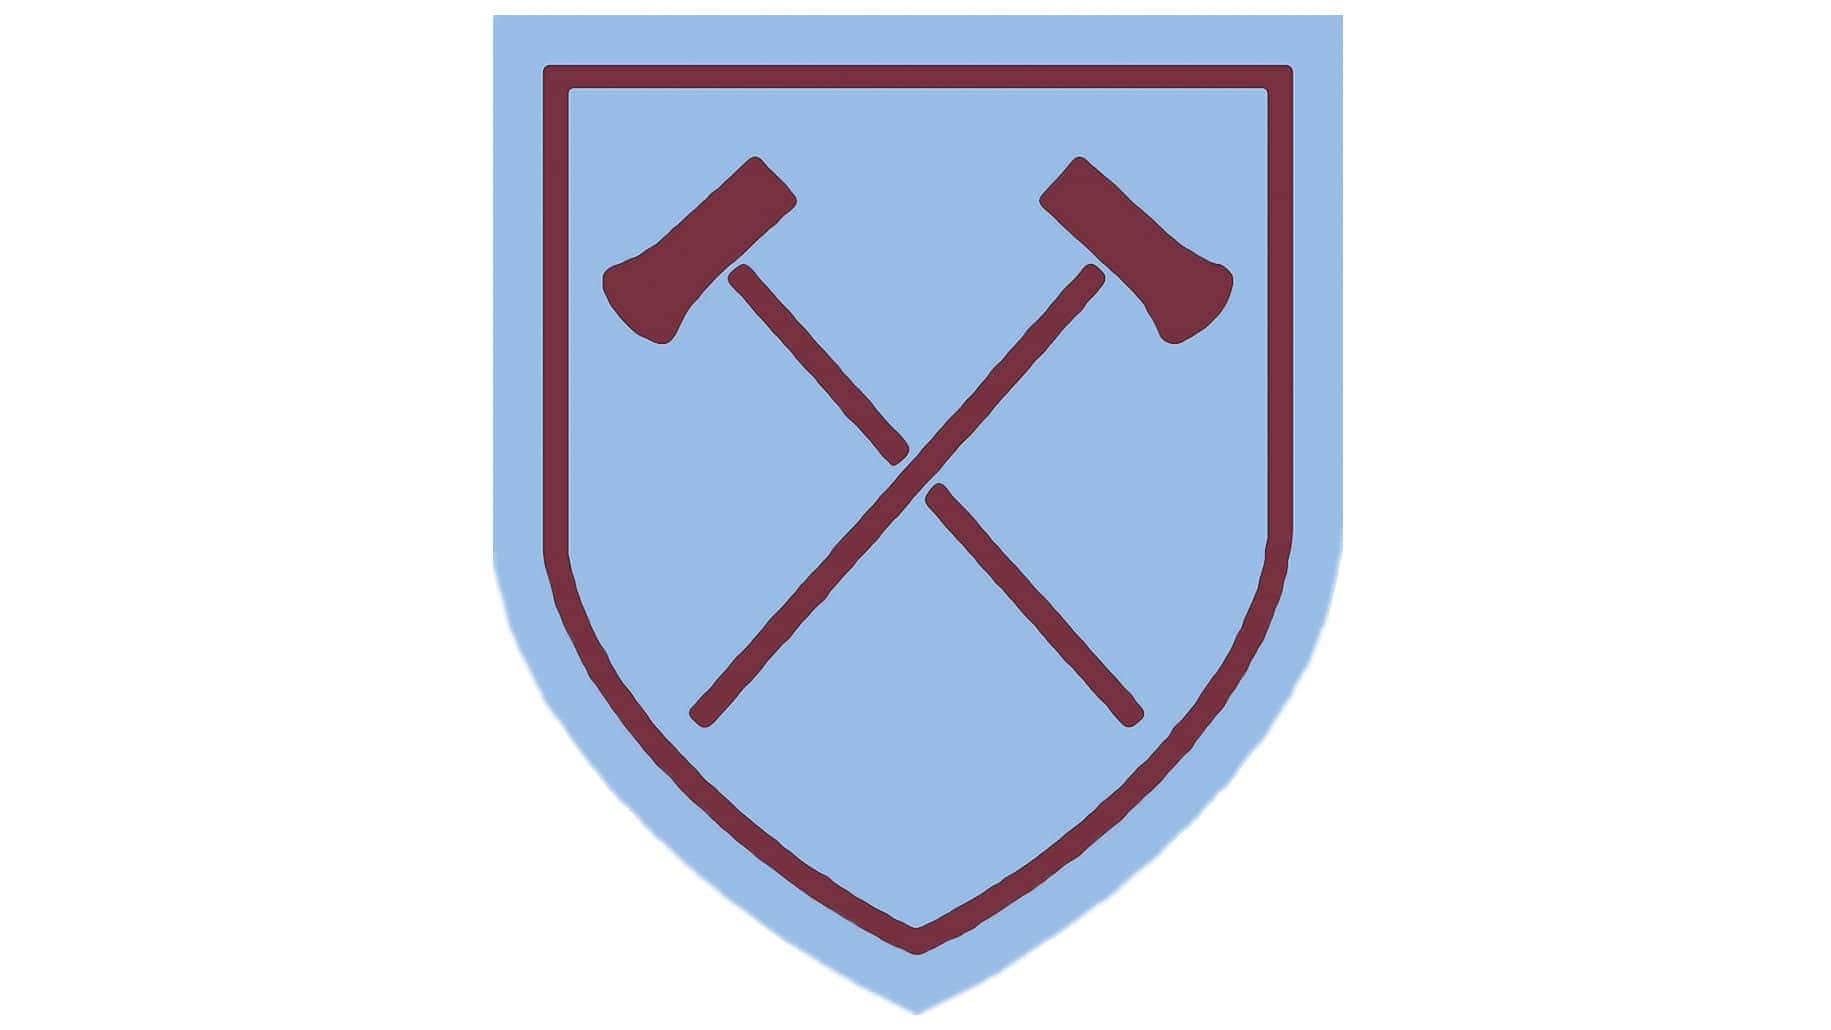 West Ham Logo The Most Famous Brands And Company Logos In The World